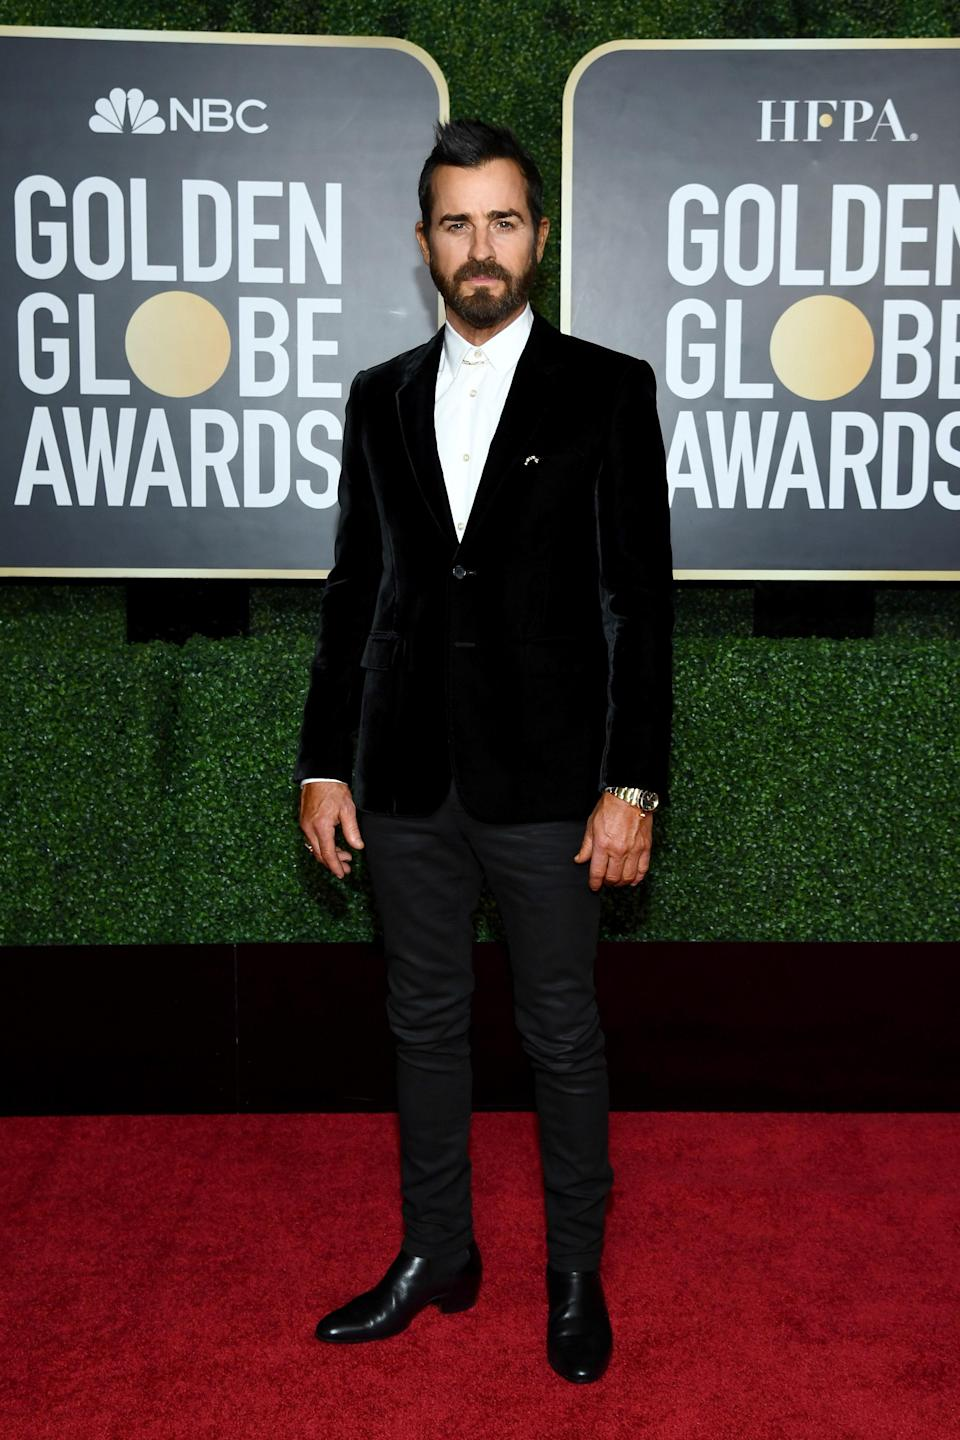 Theroux can't exactly rock his typical leather jacket-and-skinny jeans look to an awards show. A velvet tuxedo jacket and Chelsea boots gets the same idea across nicely, though.